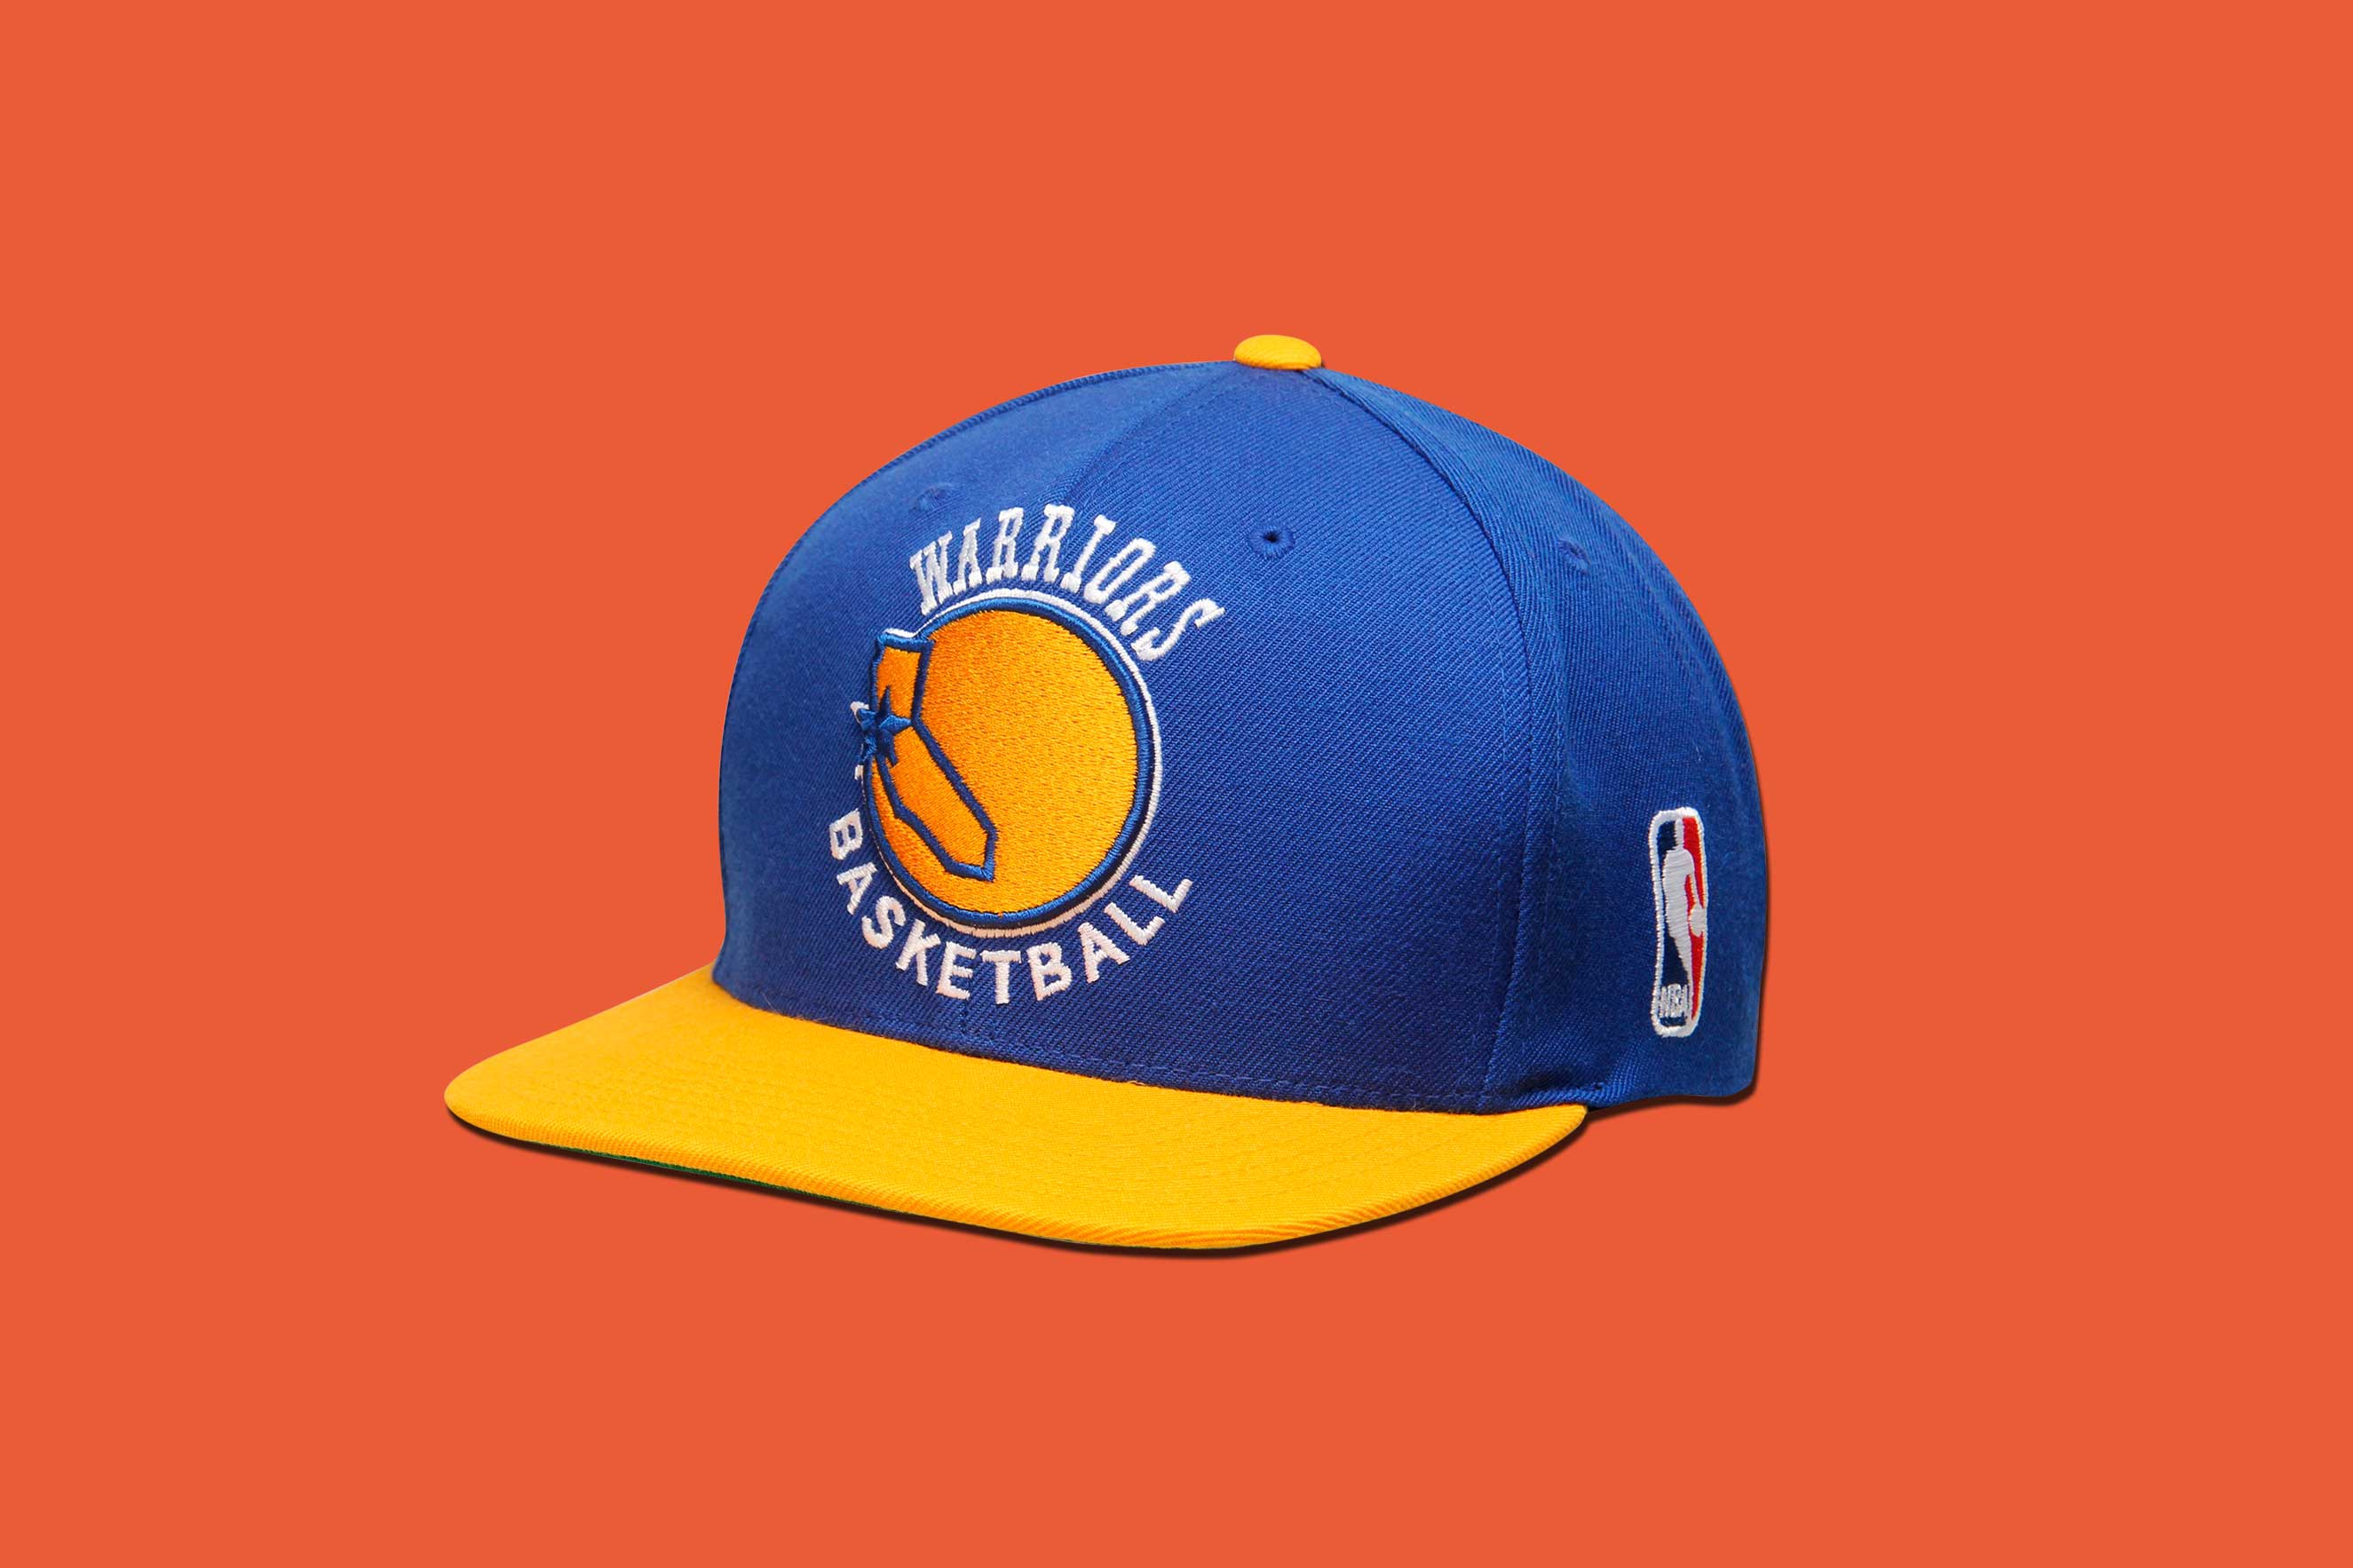 """8. Ryan Coogler's                               Warriors Hat:                                """"Where I'm from in the Bay Area, we've got two teams for most sports—the A's and the Giants, the Raiders and the 49ers,"""" says the Creed director. """"What's cool about the Warriors is they're our only basketball team, so everyone can agree on them. As a kid, some of my finest memories were at those games. So when we shot Creed in Philadelphia, I almost always wore a Warriors hat. It made me feel like I had a little piece of home with me."""""""